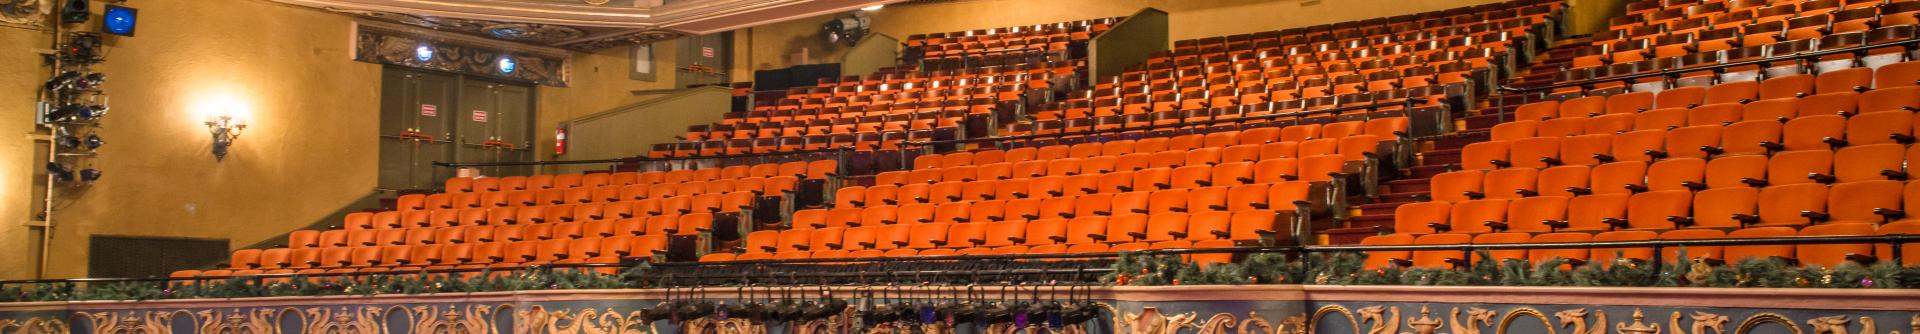 Empty theater seats at the State Theatre Center for the Arts